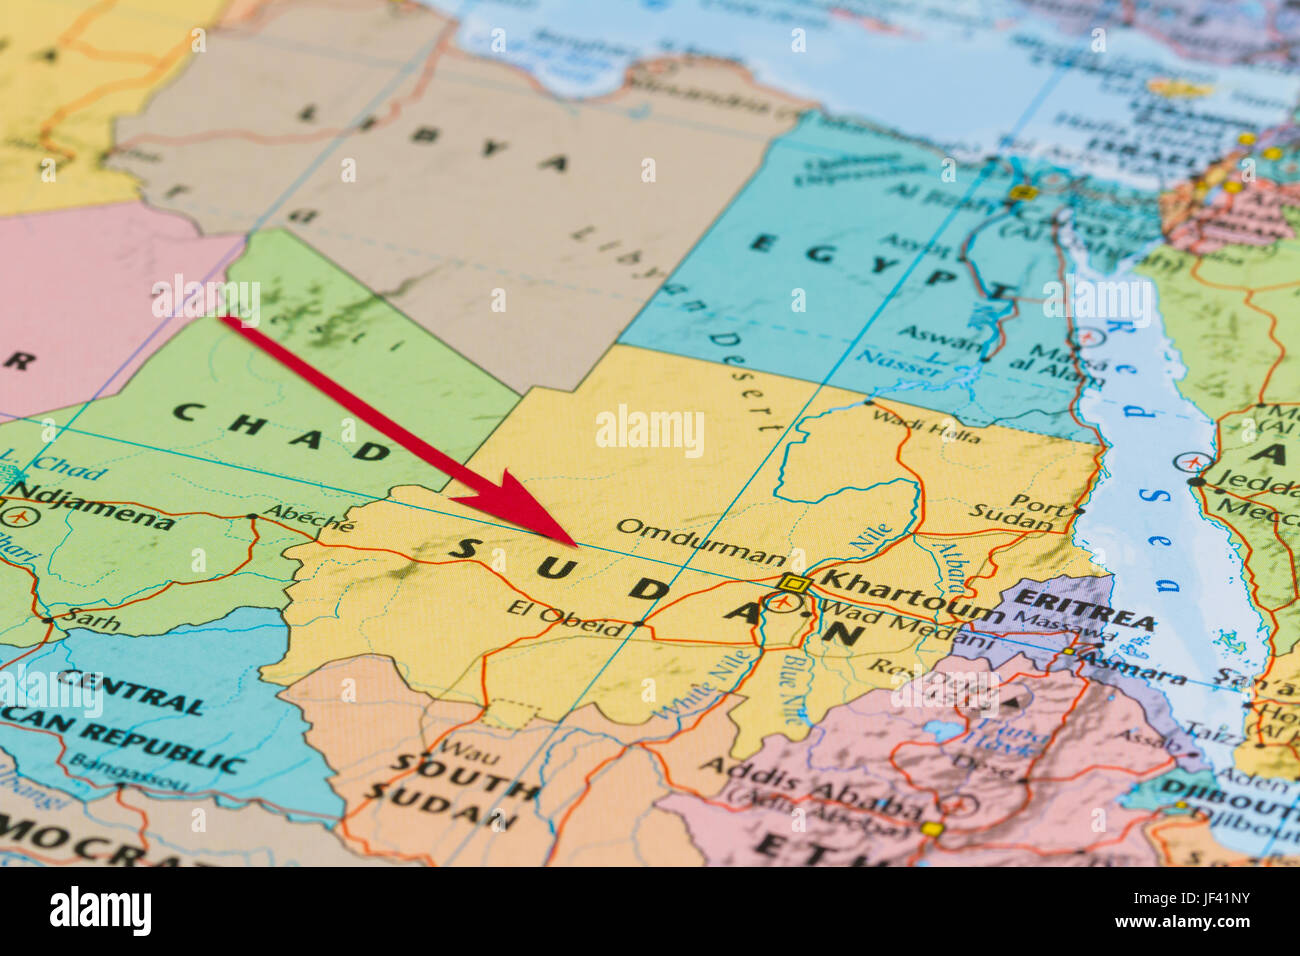 Photo Of Sudan Country Indicated By Red Arrow Country On African - What continent is sudan in